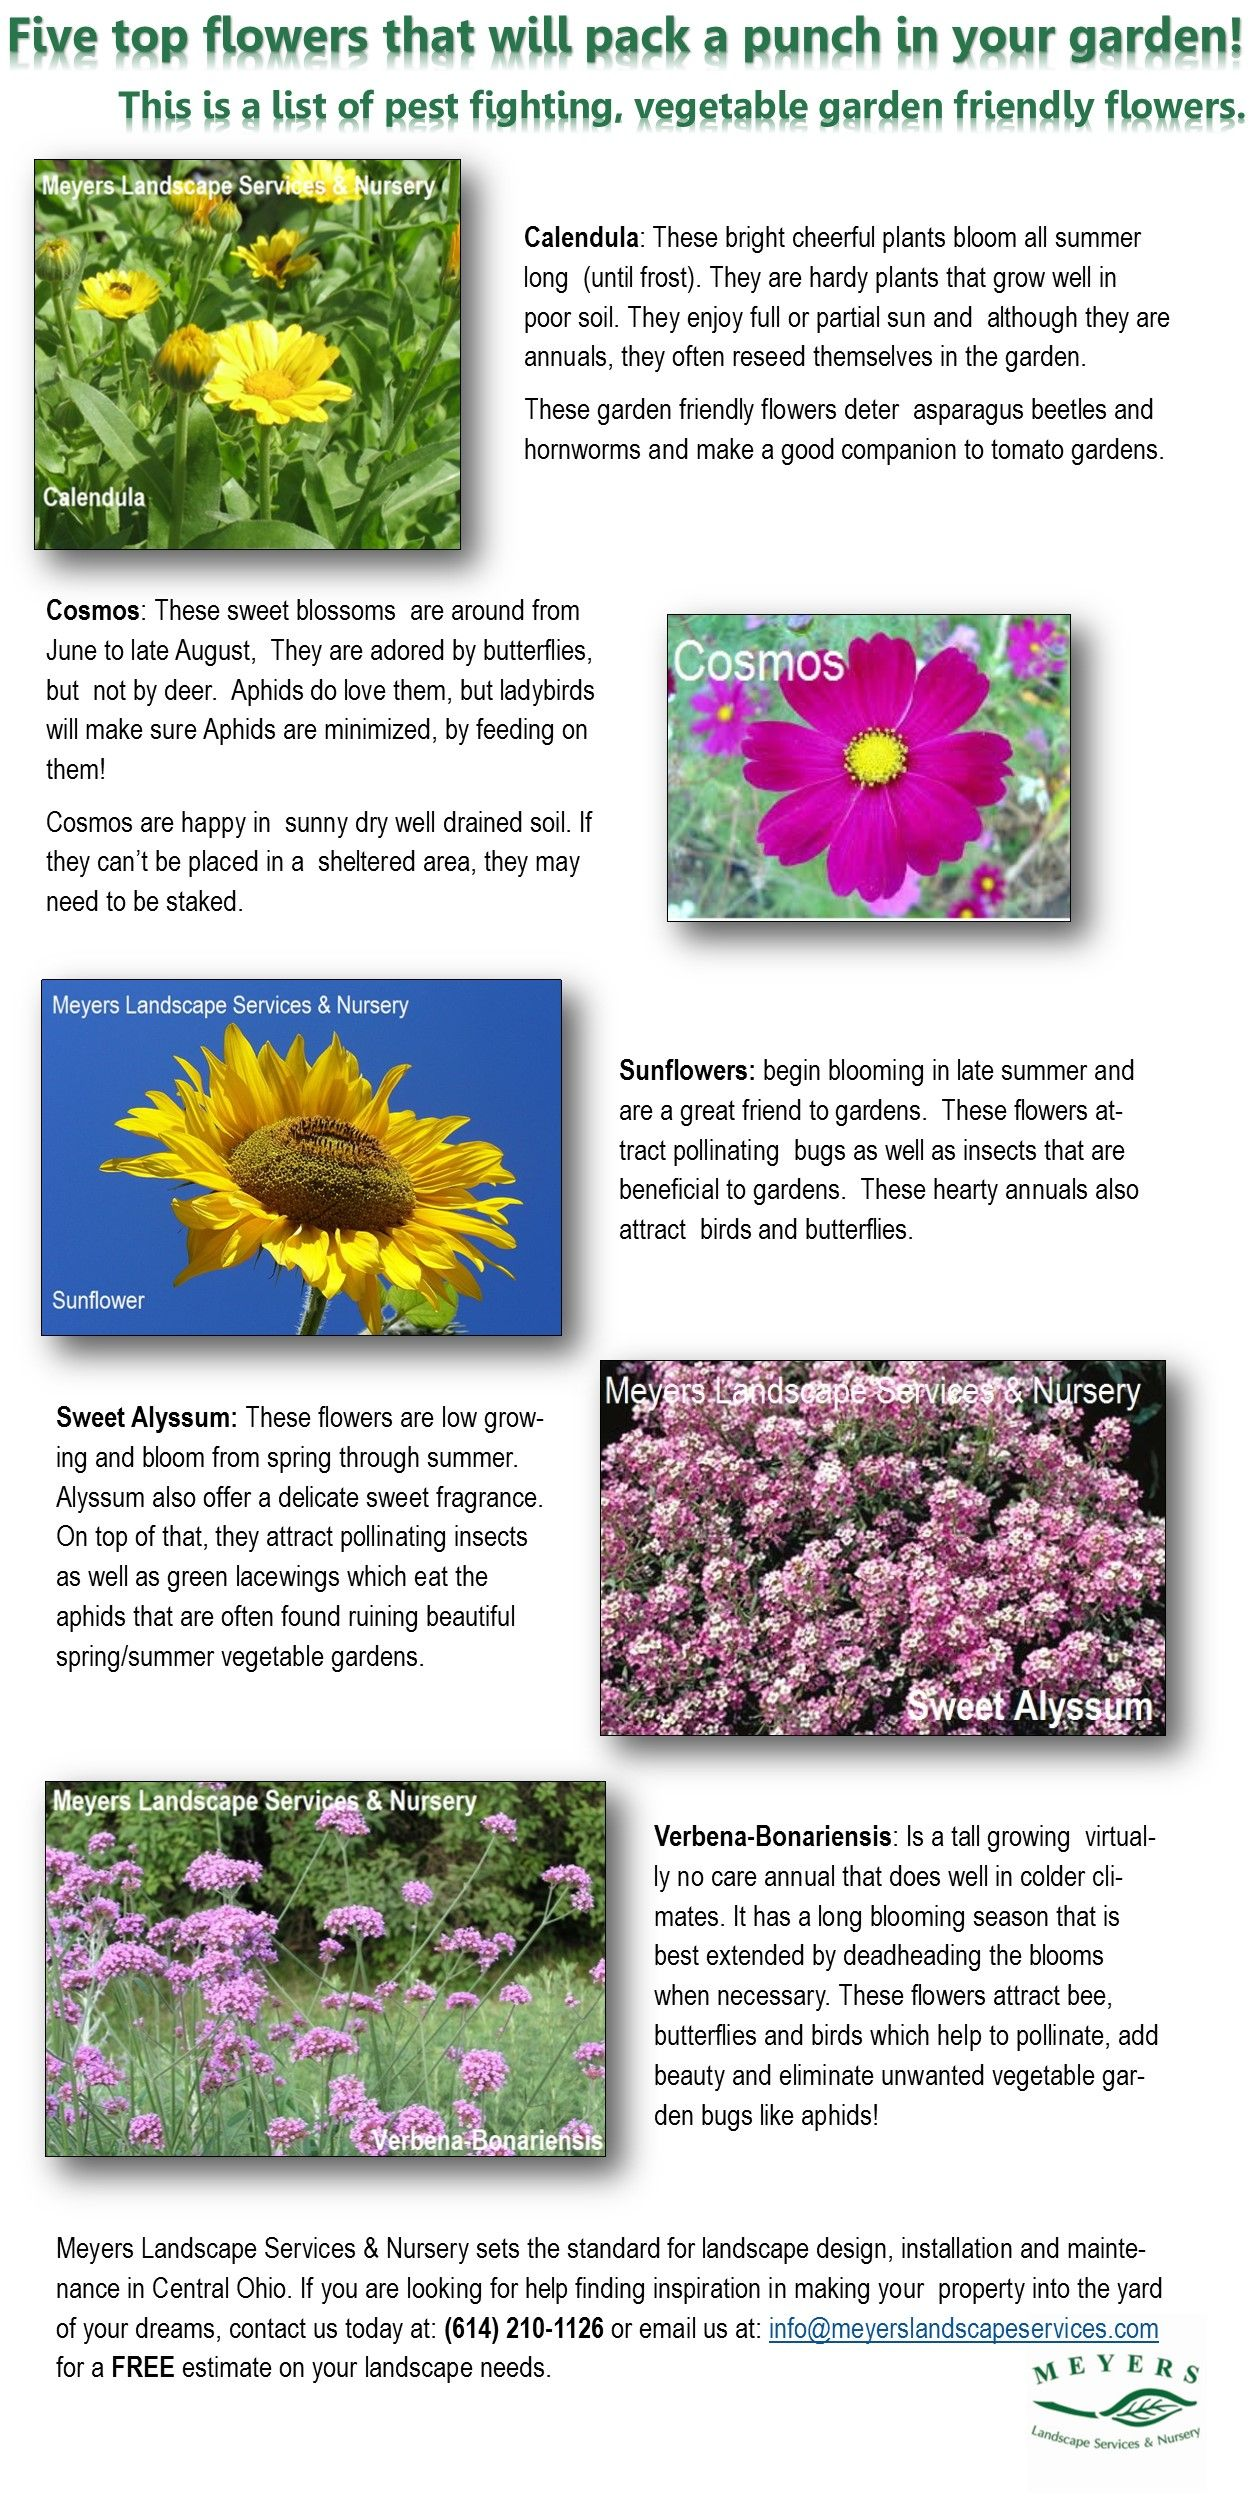 Ever Wonder If There Are Ways To Deter Pesky Insects And